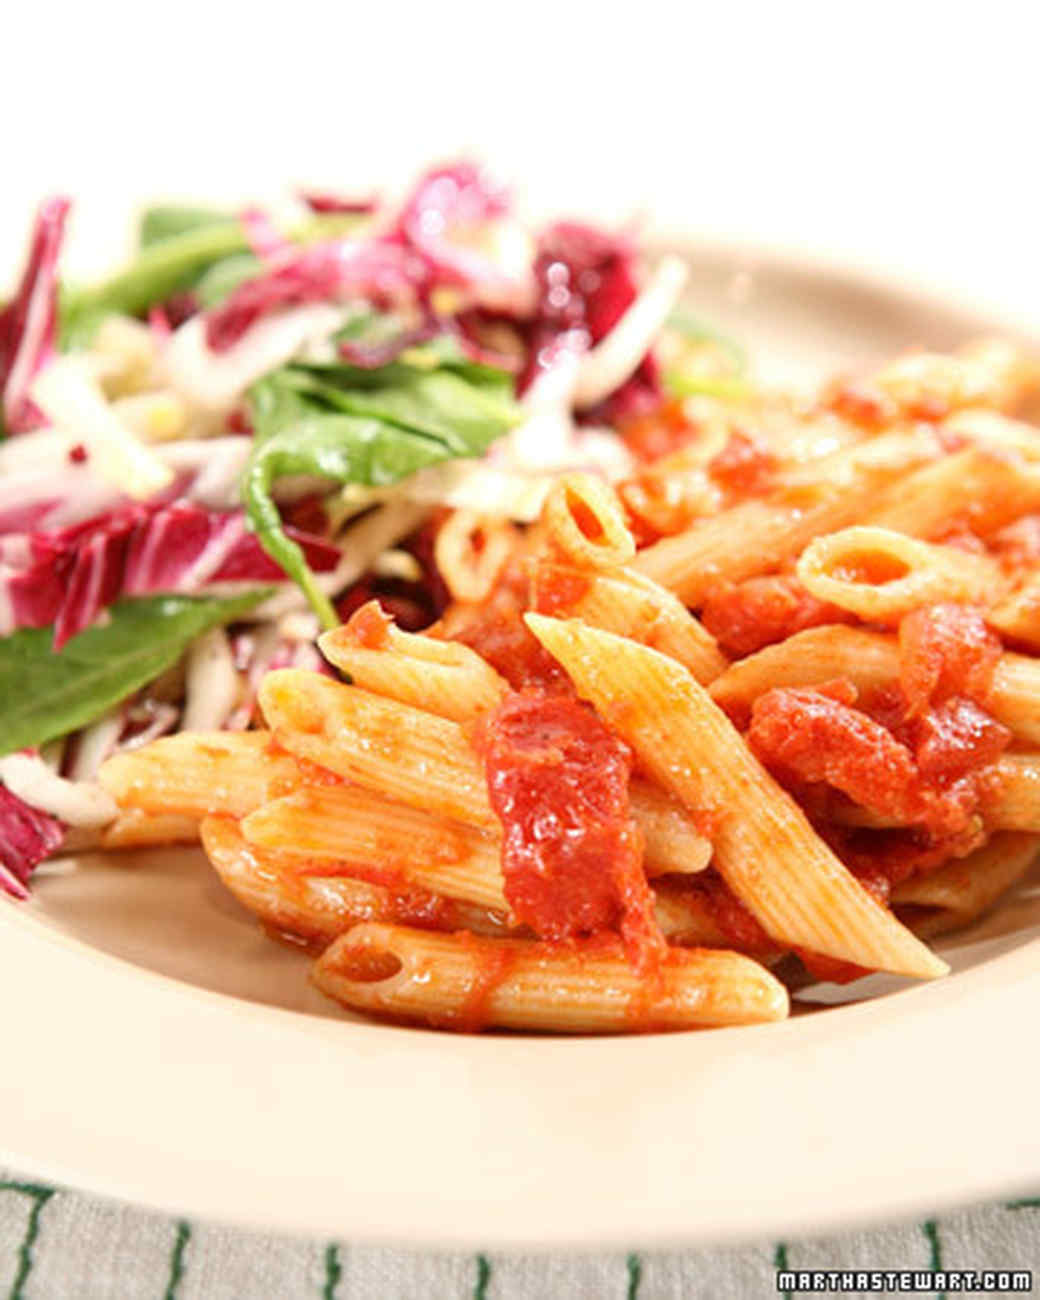 Baked Pasta with Tomatoes and Parmesan